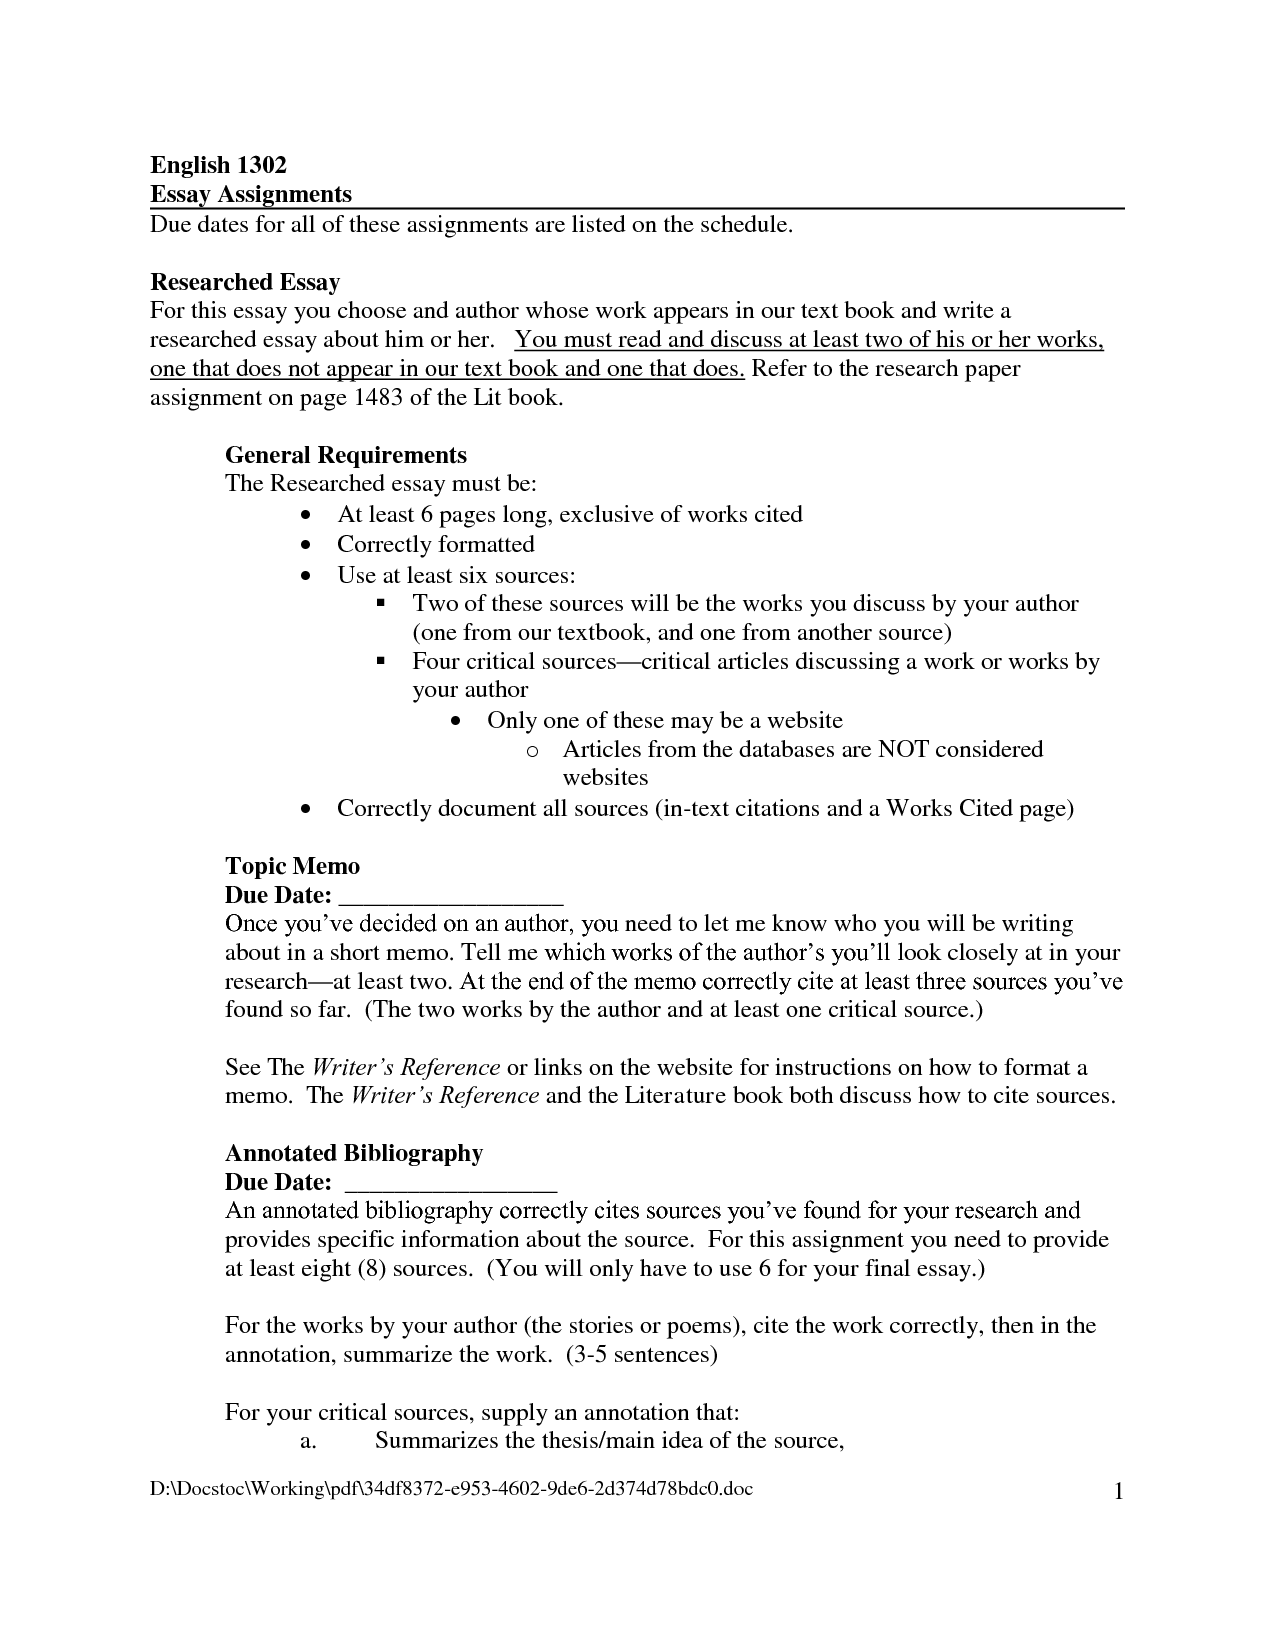 Thesis Examples For Argumentative Essays  Advanced English Essay also Proposal Essay Topics Examples  Ideas Of Cover Letter Examples Biography Essays Personal  Example Of An Essay With A Thesis Statement